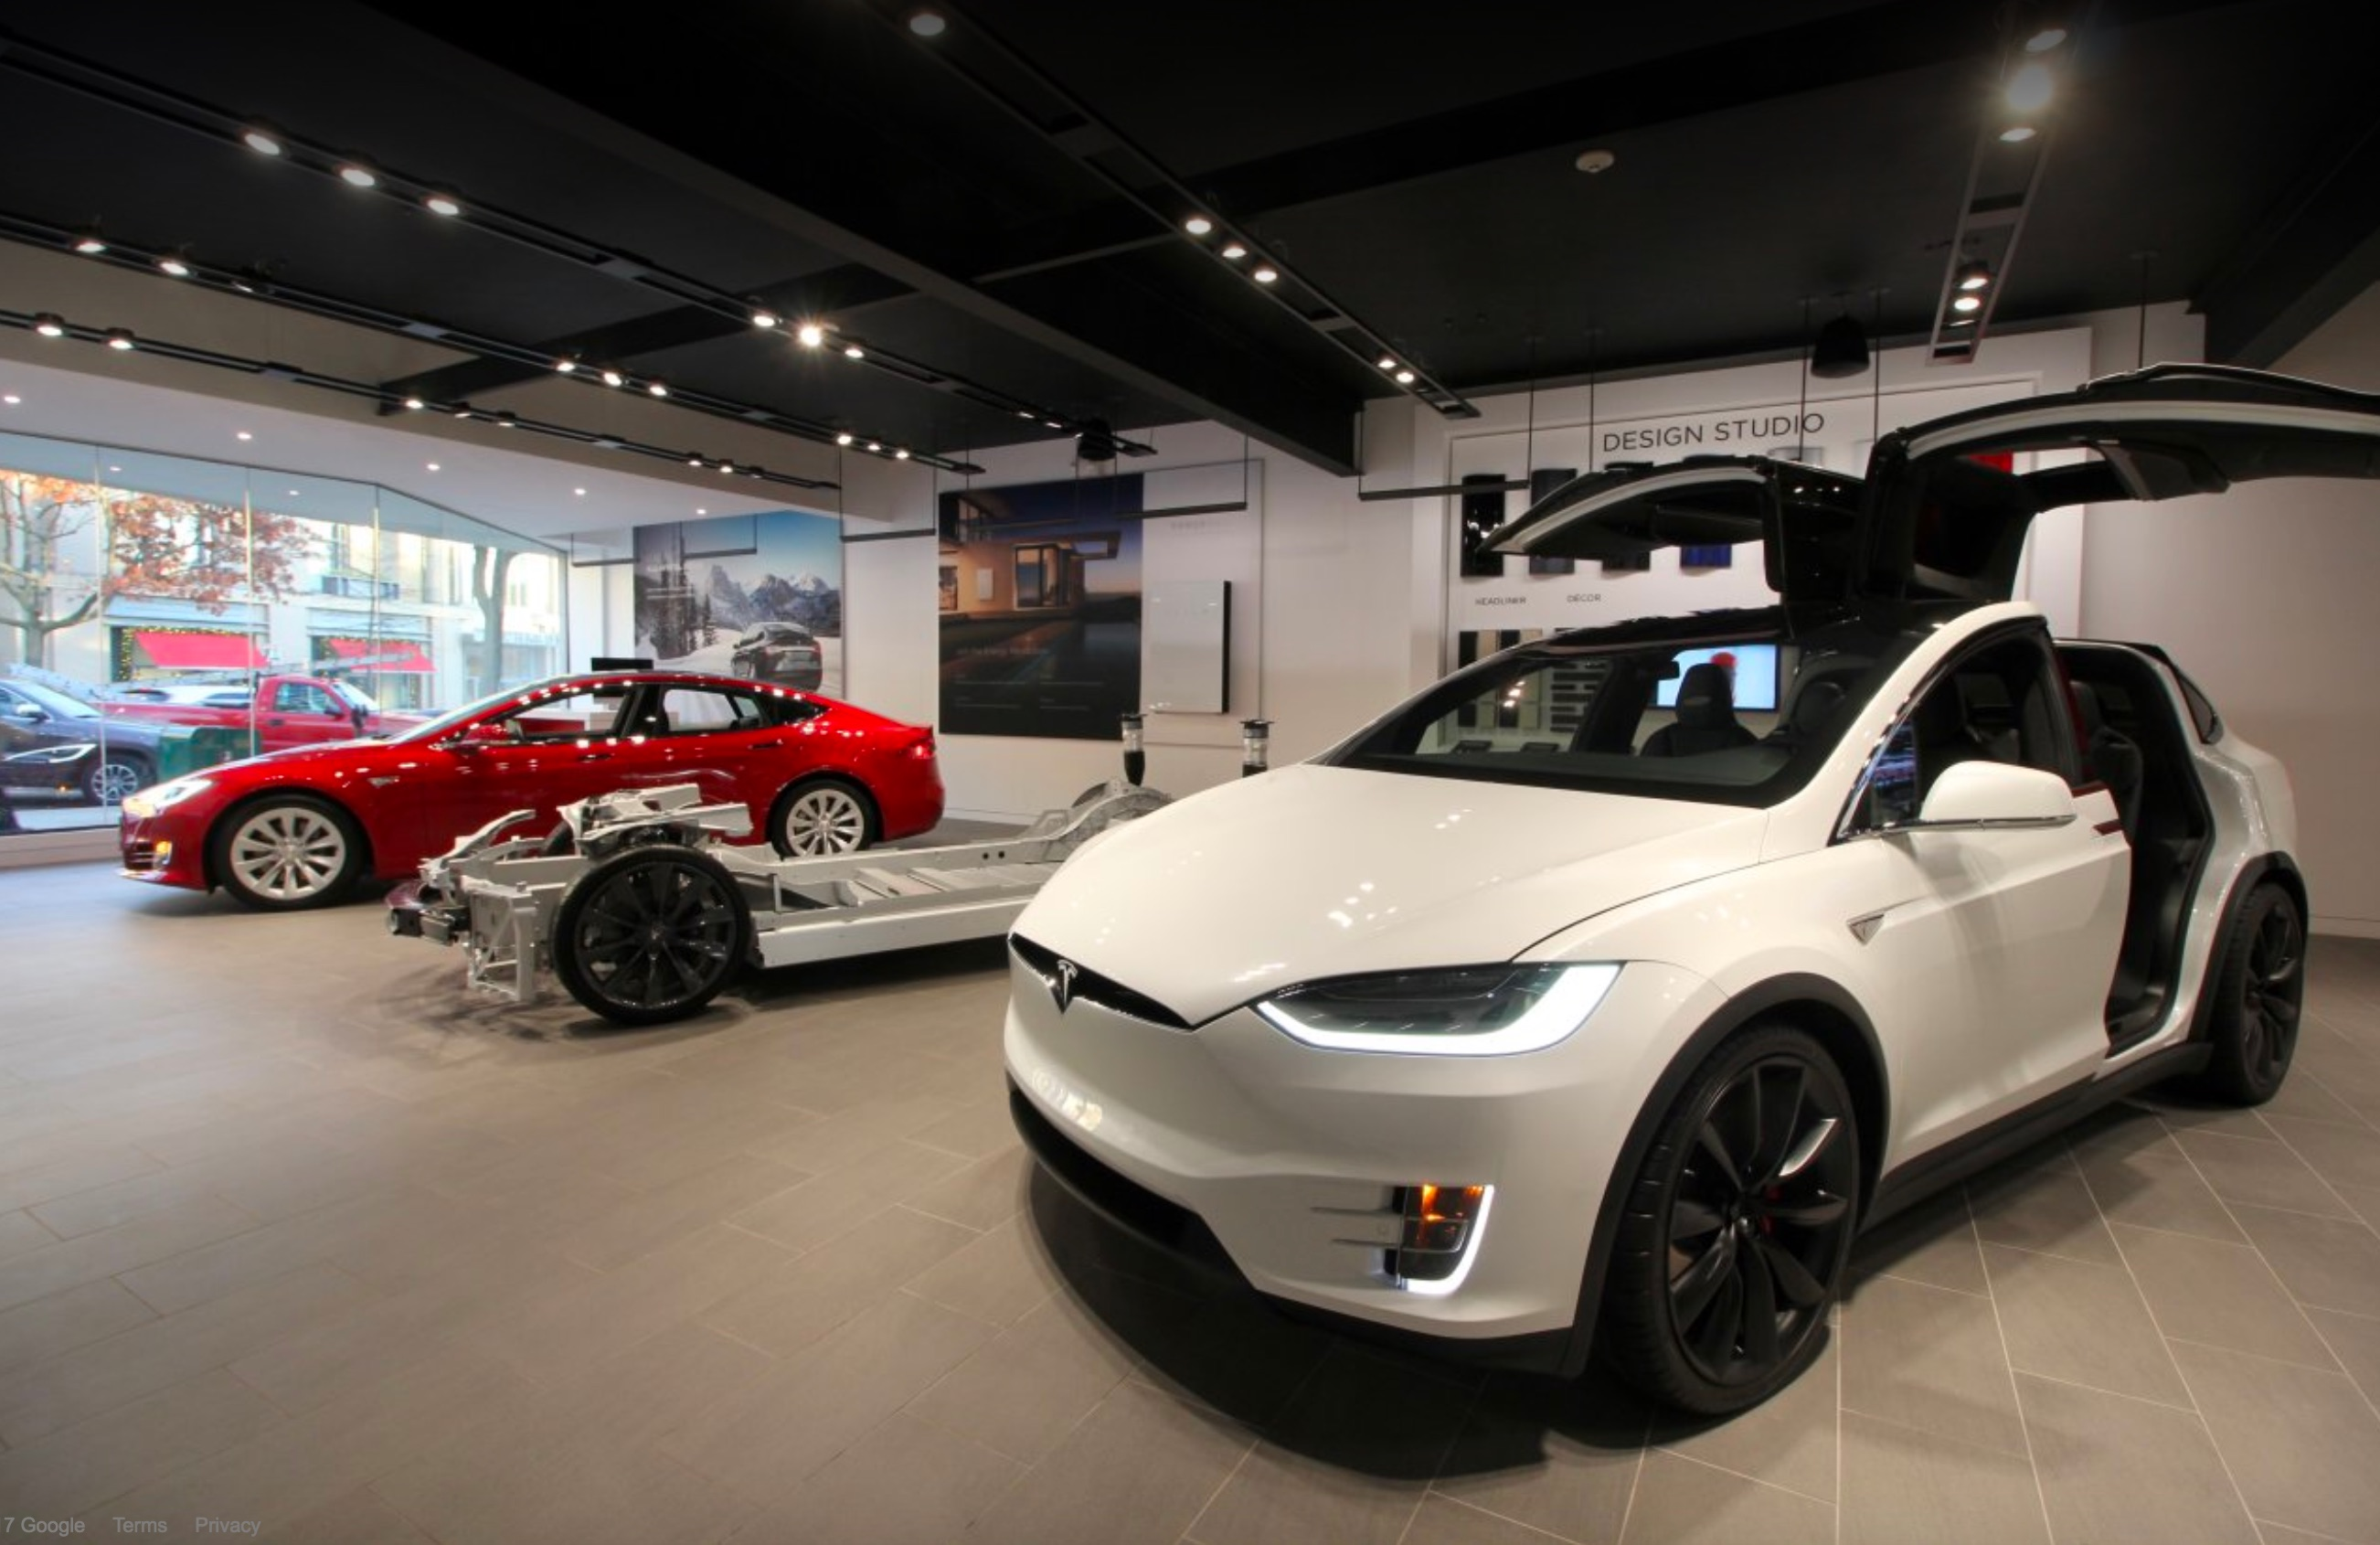 tesla lowers price of model s x 100d by 3 500 and p100d by 5 000. Black Bedroom Furniture Sets. Home Design Ideas